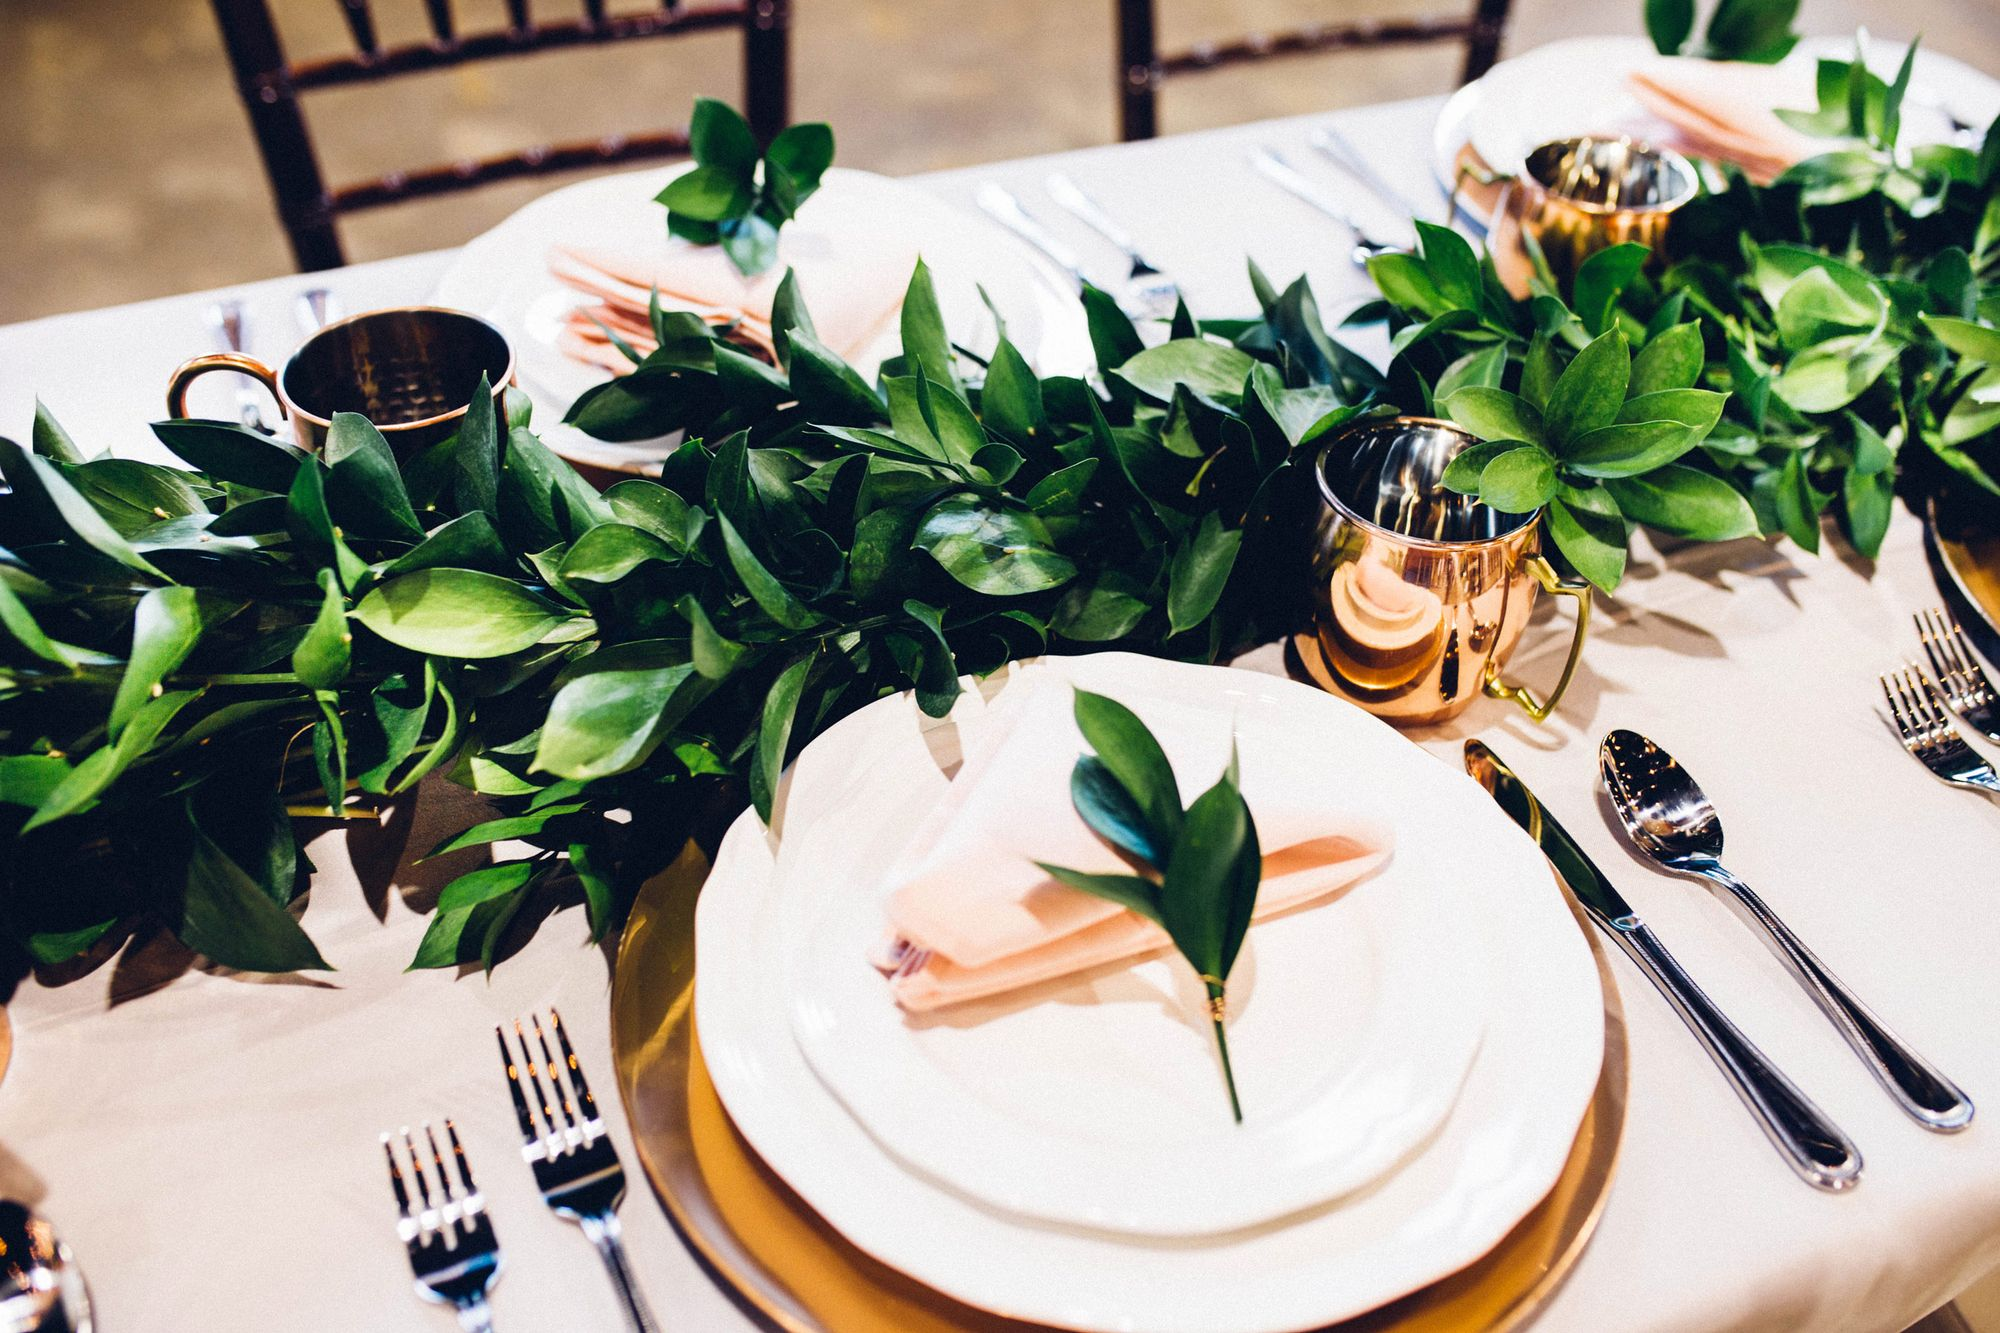 Modern_Industrial_Wedding_Shoot_The_Historic_Startup_Building_Provo_Utah_Elegant_Table_Setting.jpg